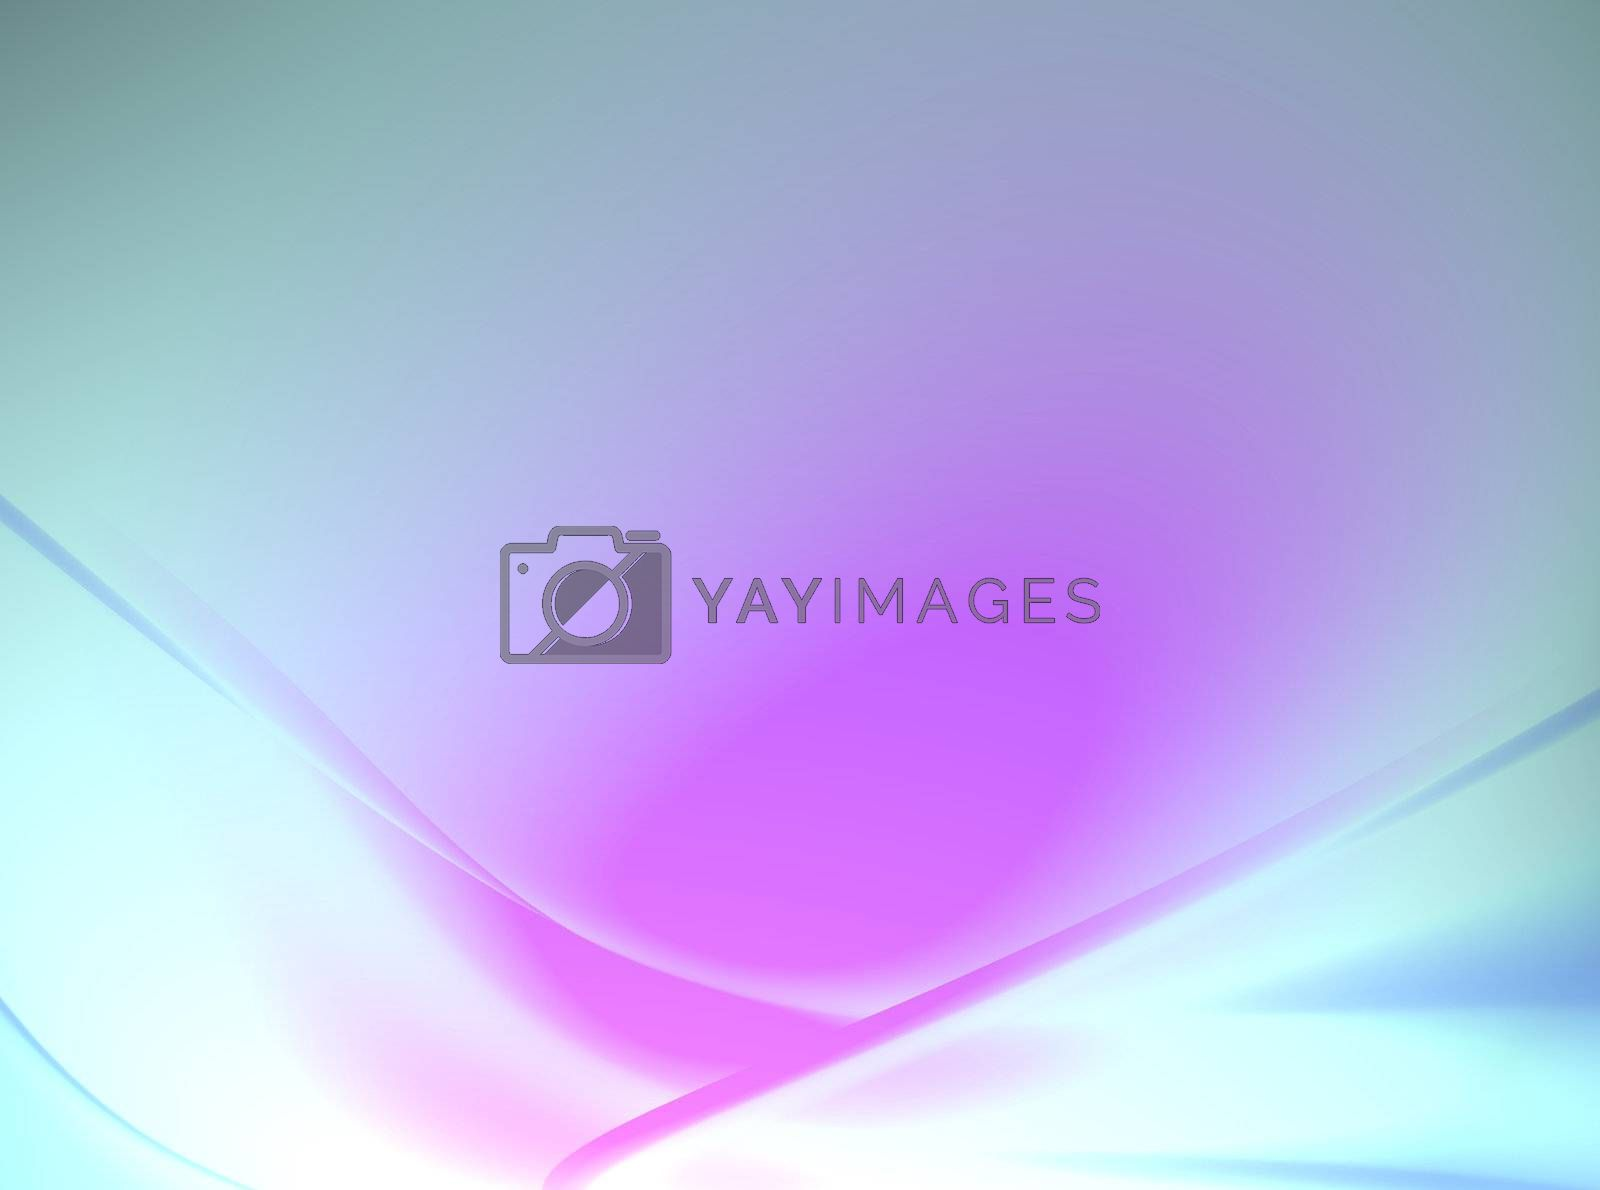 blue and magenta abstract background. computer generated image